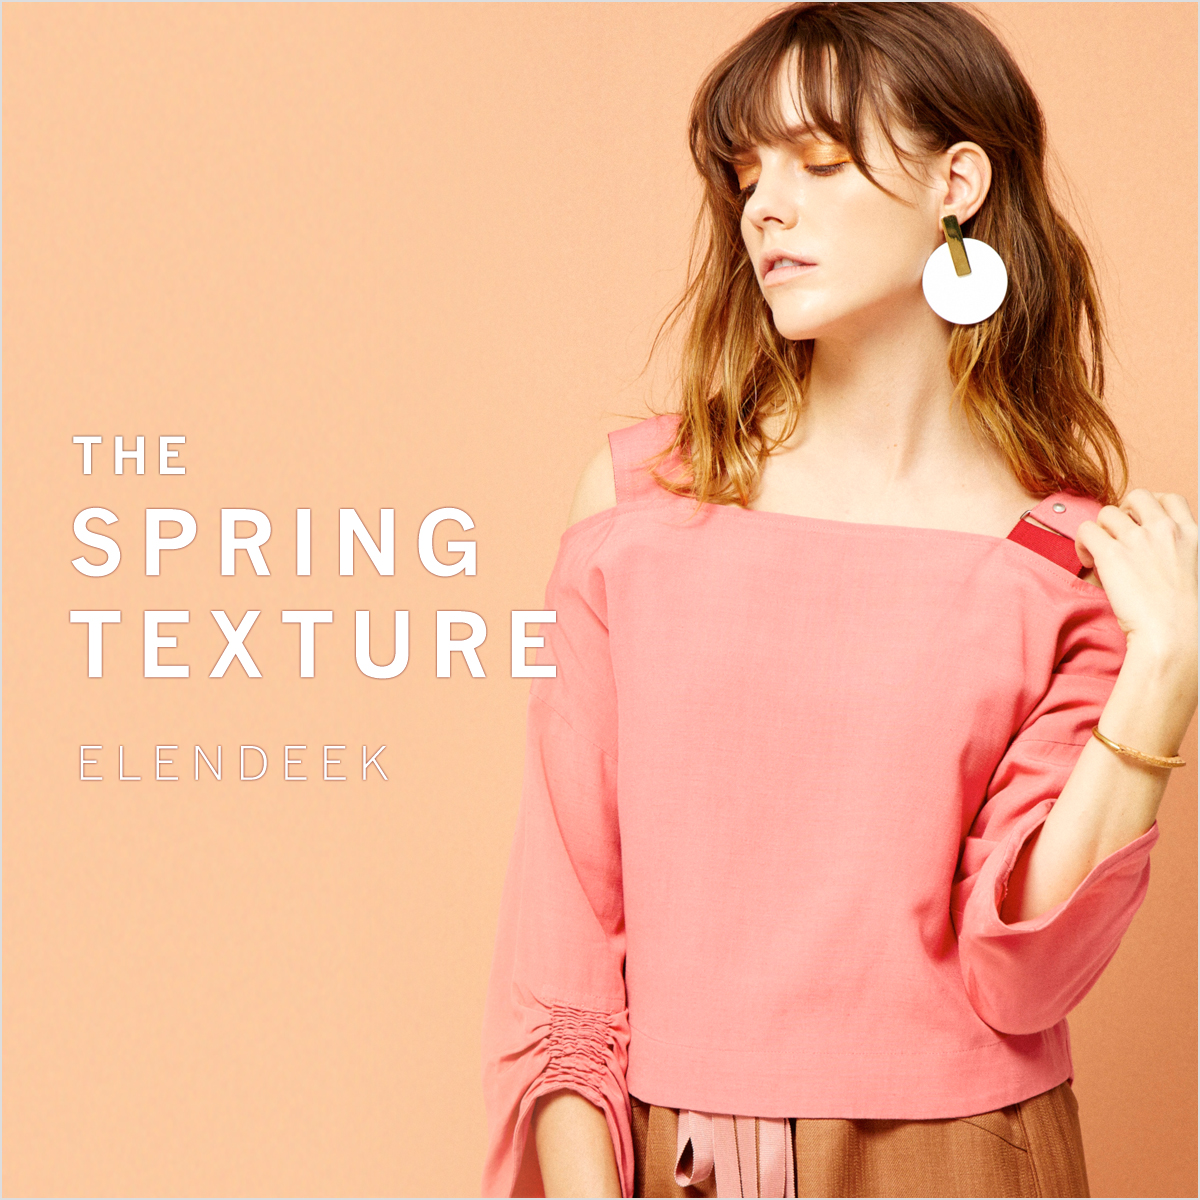 THE SPRING TEXTURE